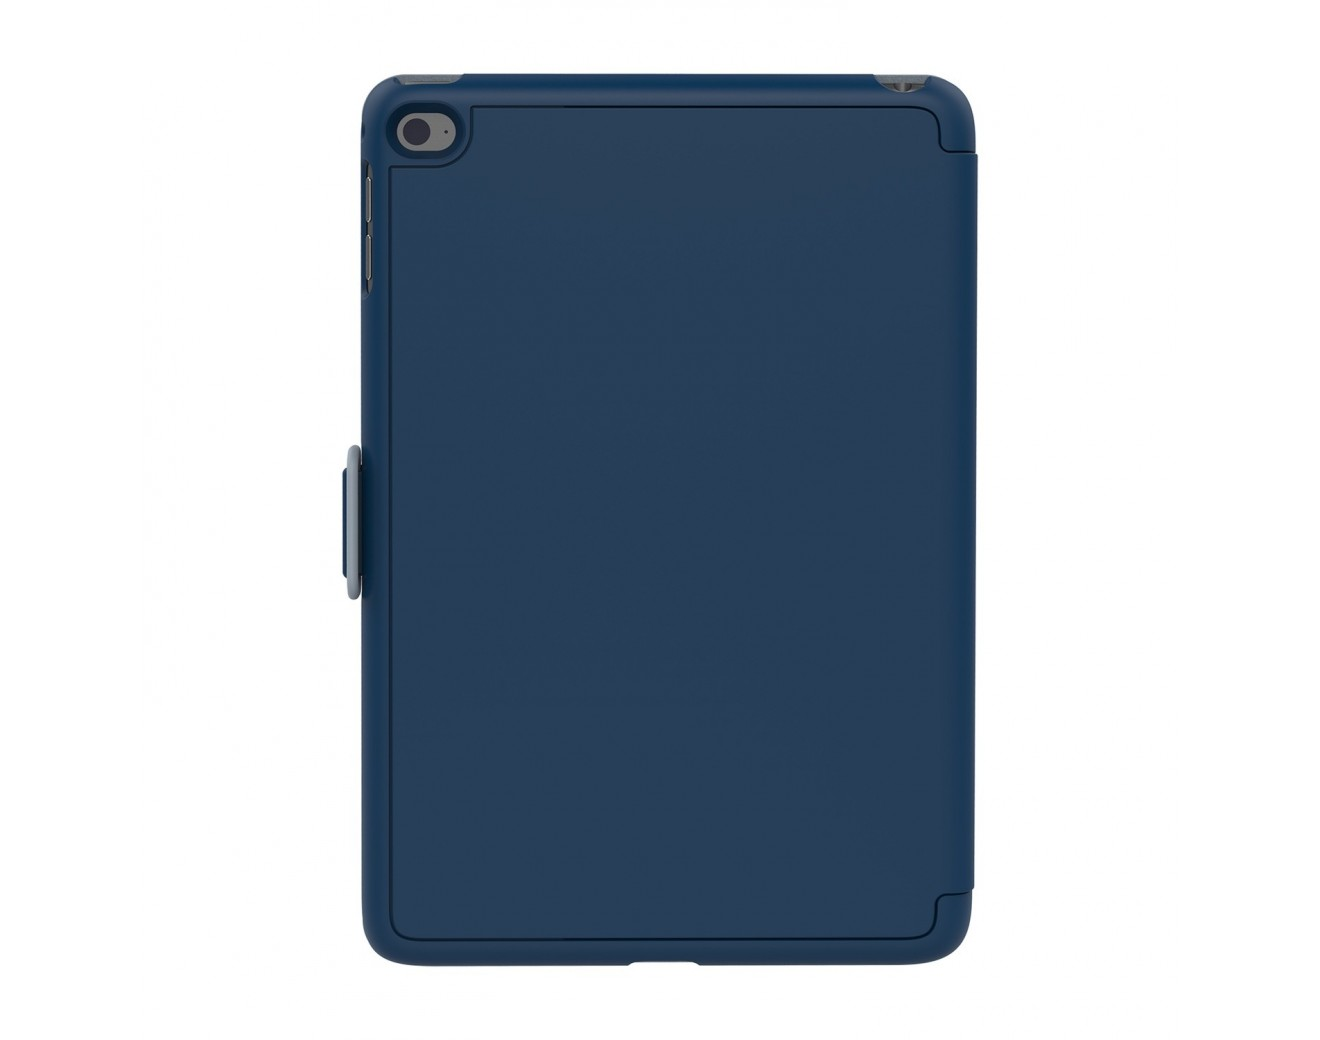 Калъф Speck StyleFolio за iPad Mini 5 и iPad MIni 4 - Deep Sea